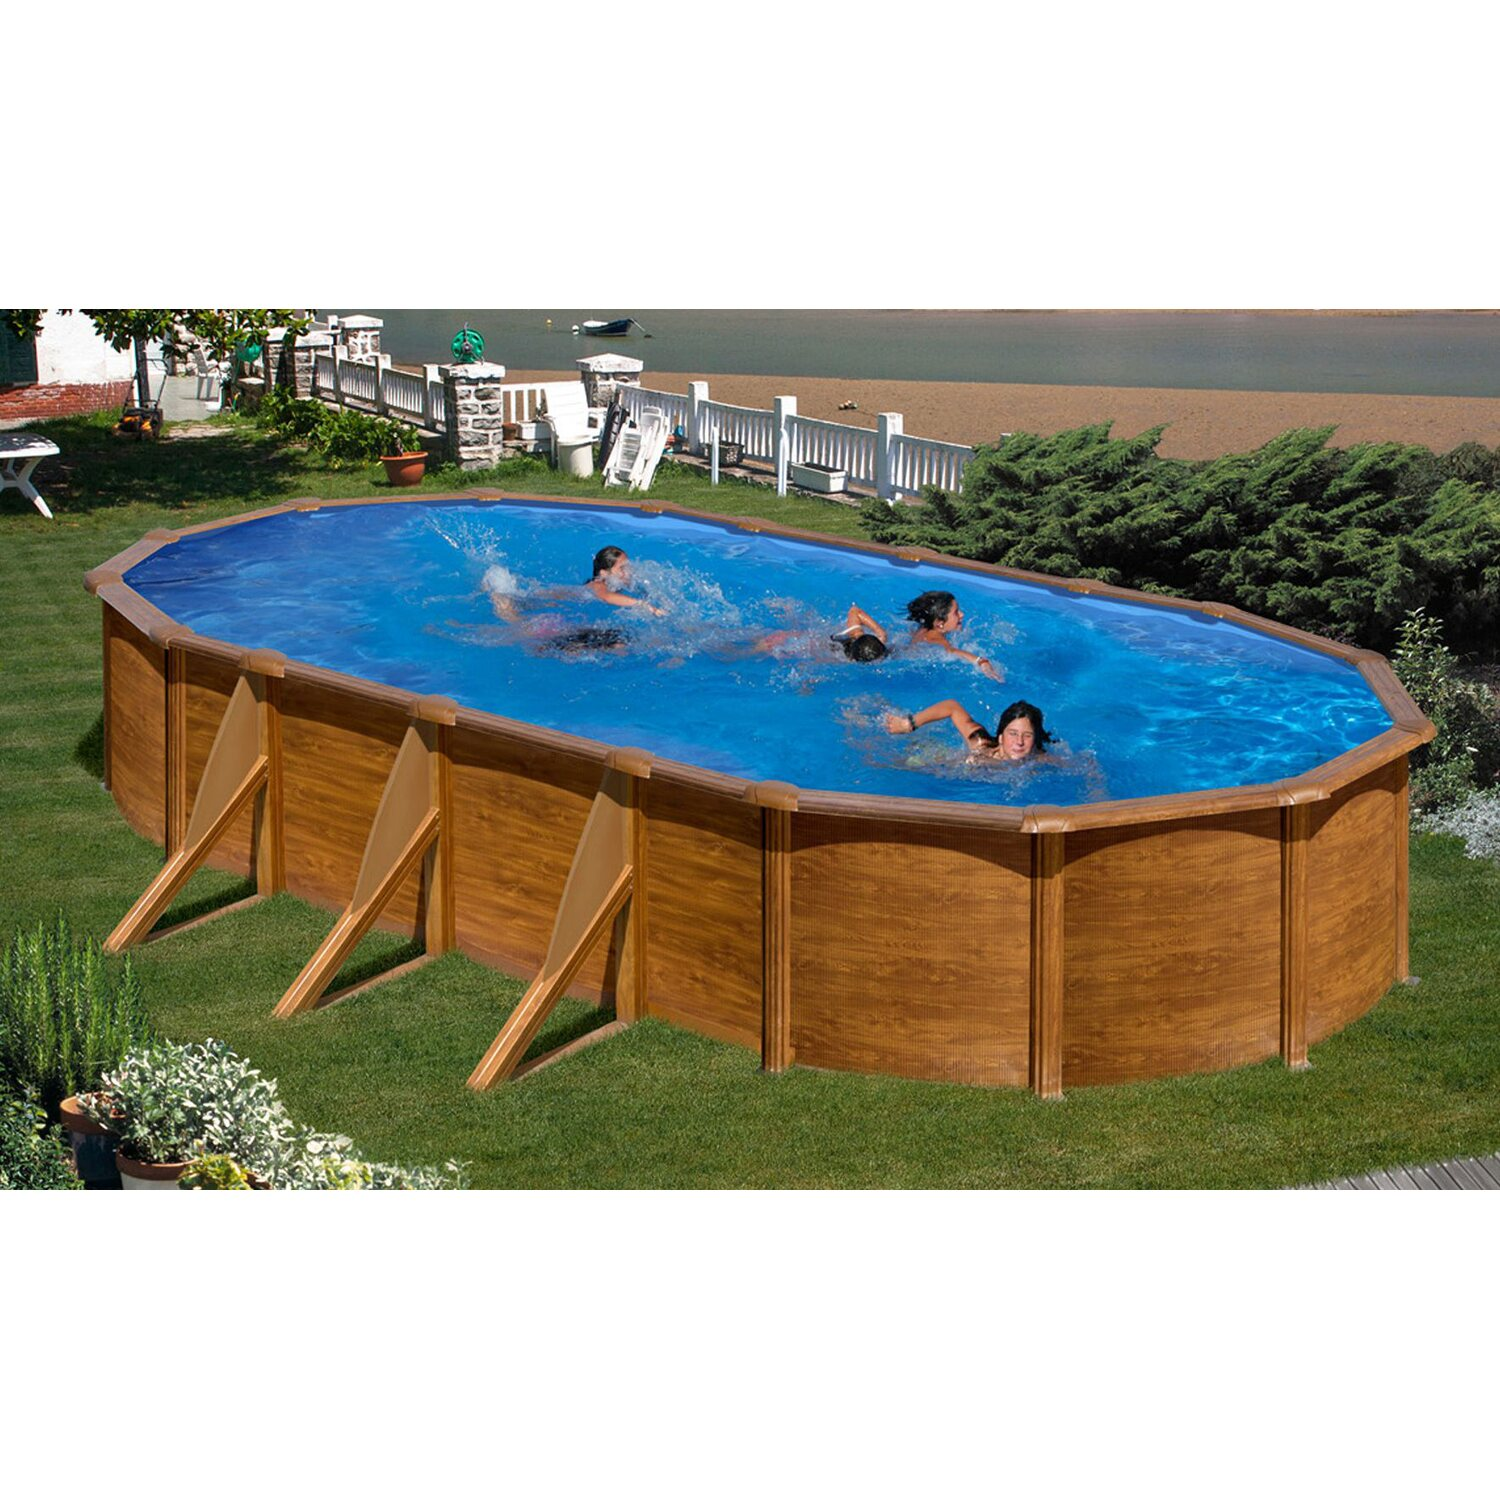 pool set holz dekor ravenna aufstellbecken oval 610 cm x 375 cm x 132 cm kaufen bei obi. Black Bedroom Furniture Sets. Home Design Ideas